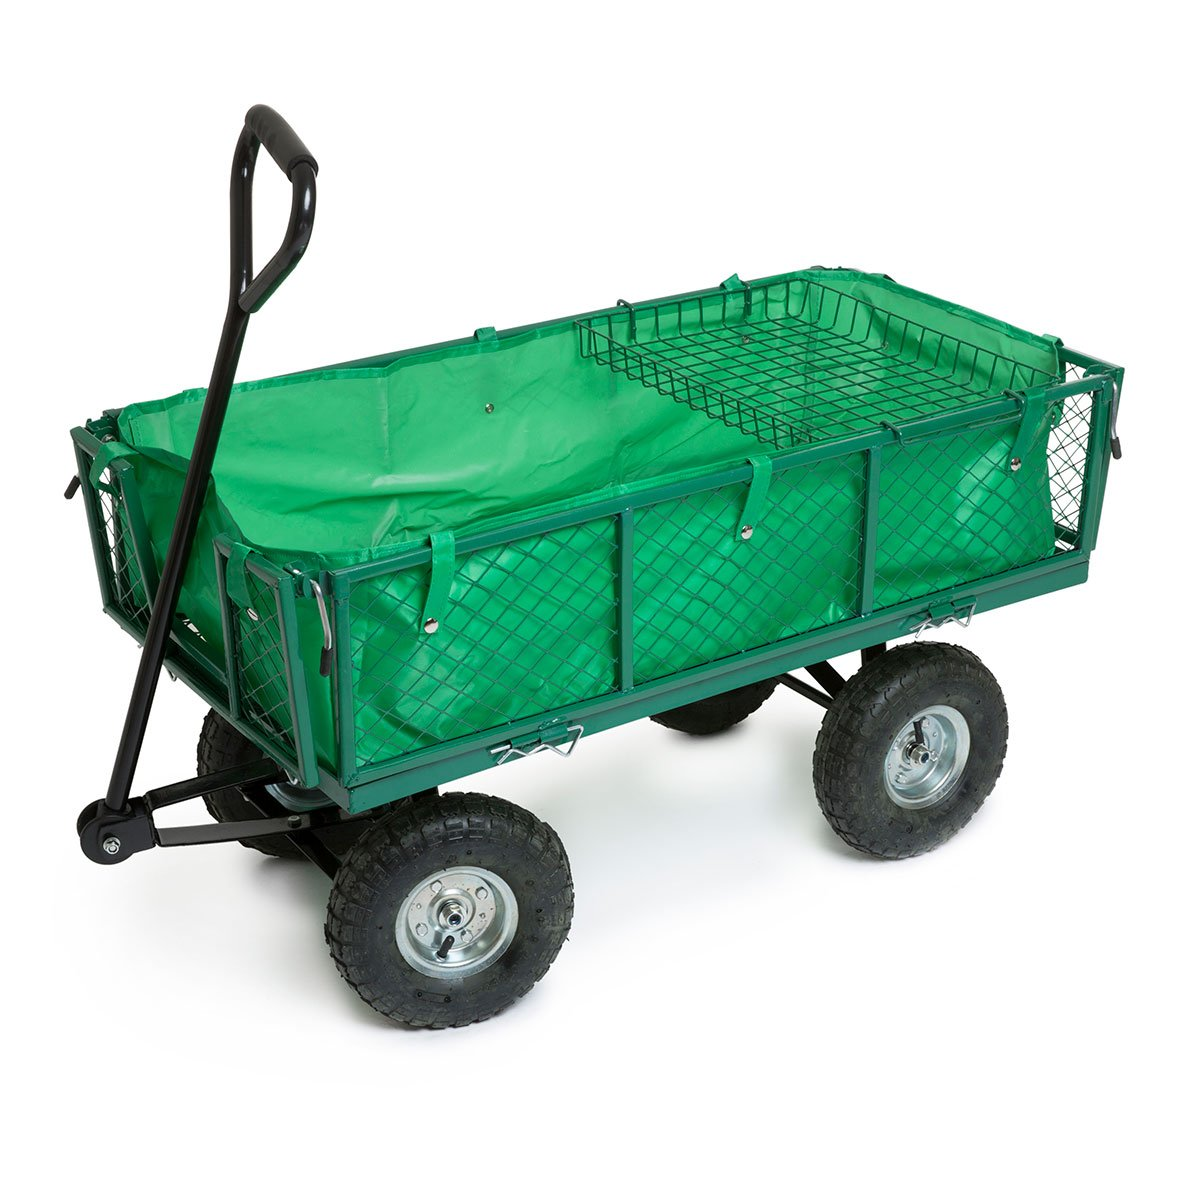 BMC Heavy Duty Garden Outdoor Utility Wheel Barrow Hand Cart Steel Truck Trolley - With Steering Handle, Fold Down Side Panels, Pneumatic Wheels, Detachable Liner and Extra Plant Shelf - Ideal for Gardening, Allotment, Paddock, Camping, Festival Wolf